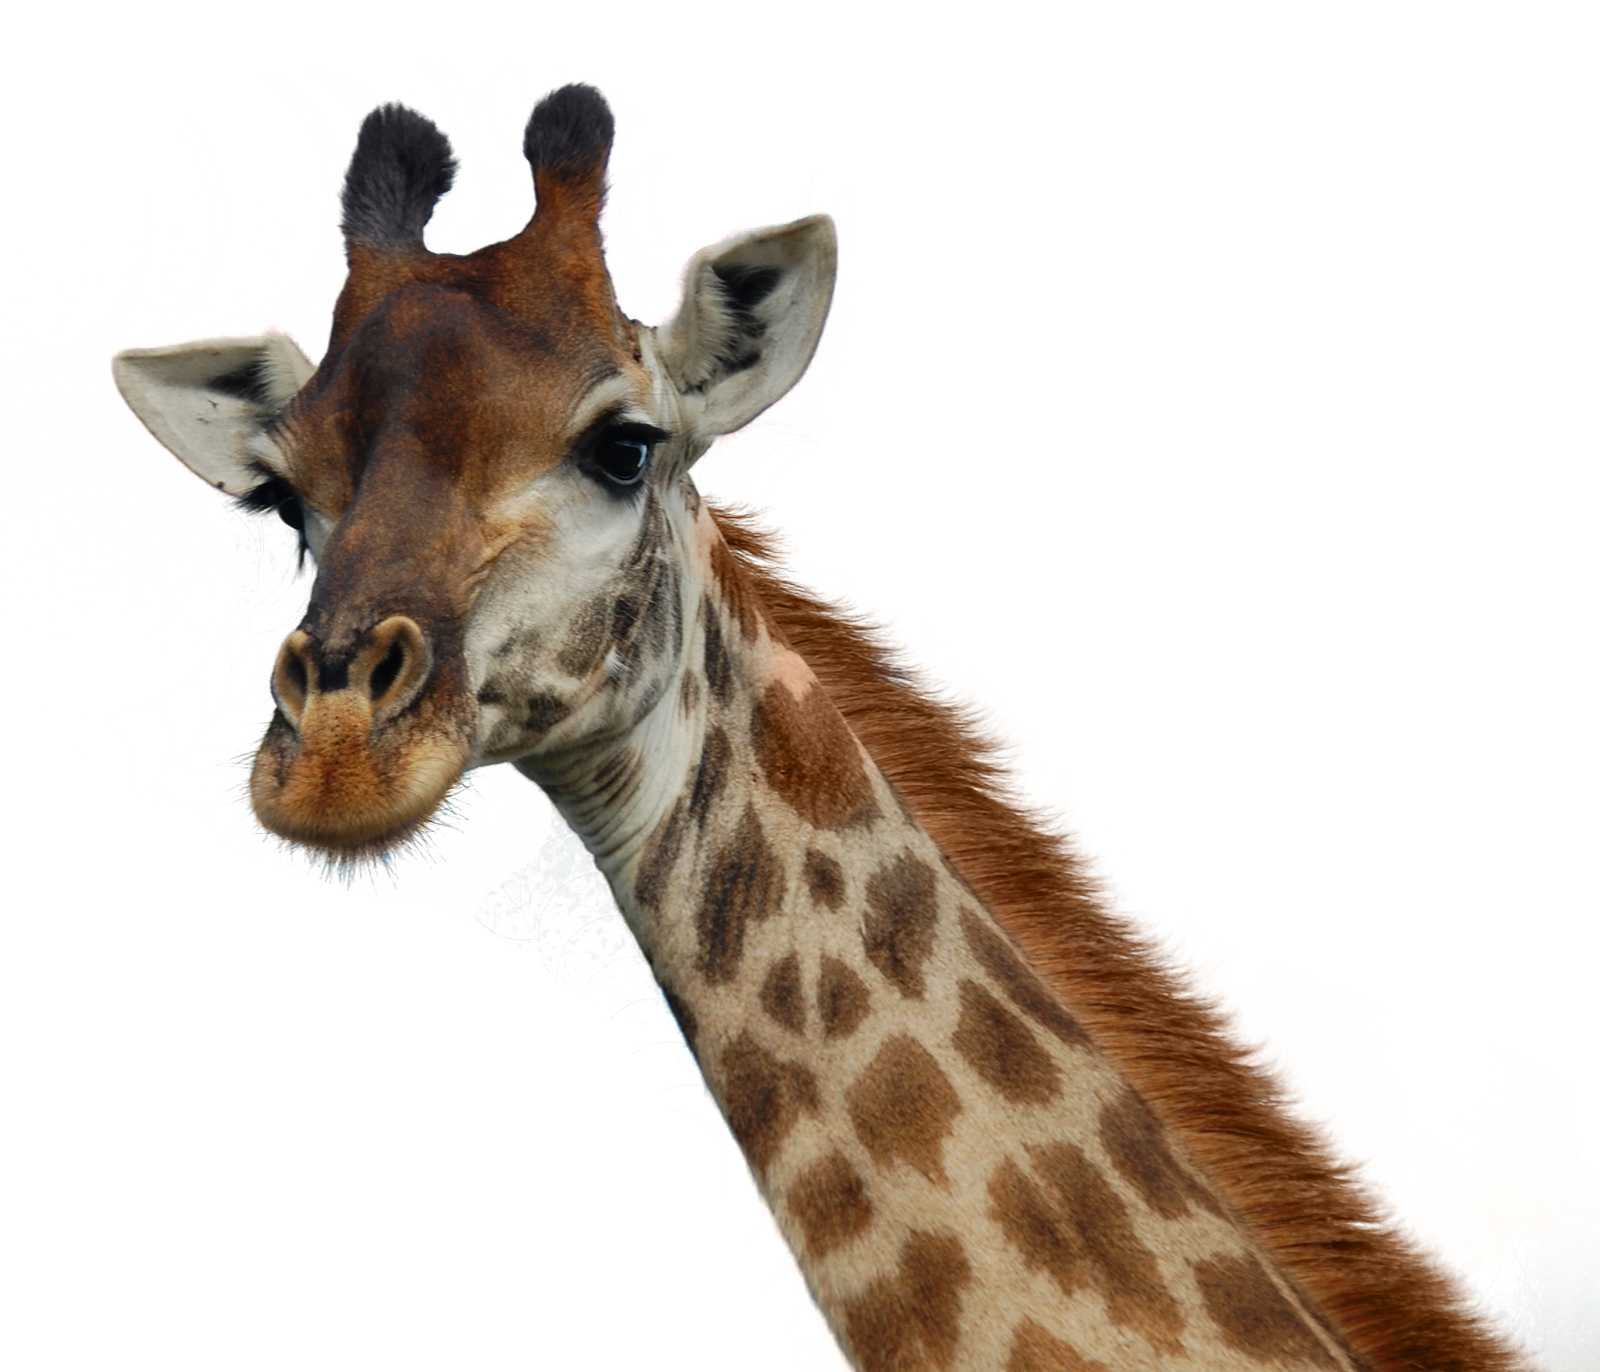 Giraffe legs png. Transparent images all pic